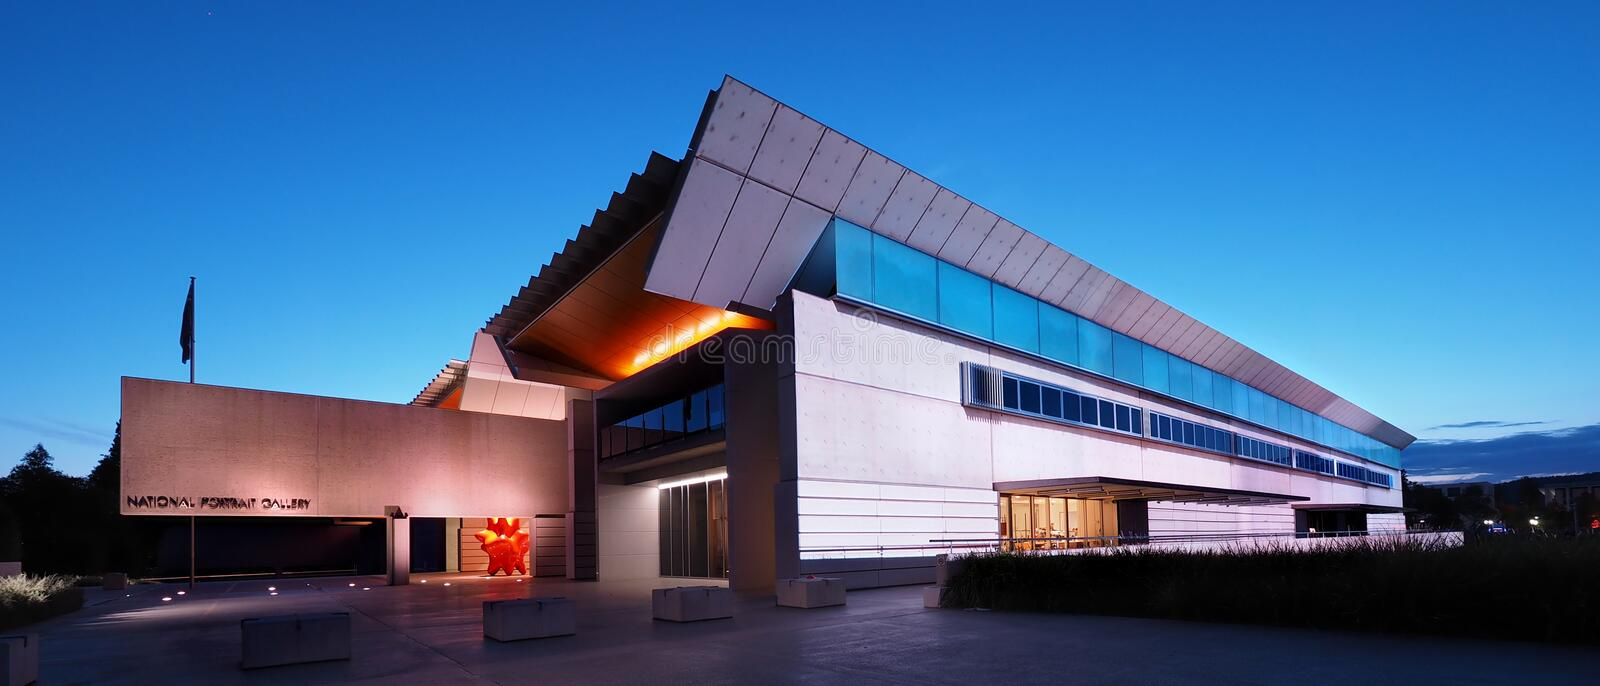 National Portrait Gallery, Canberra stockfoto